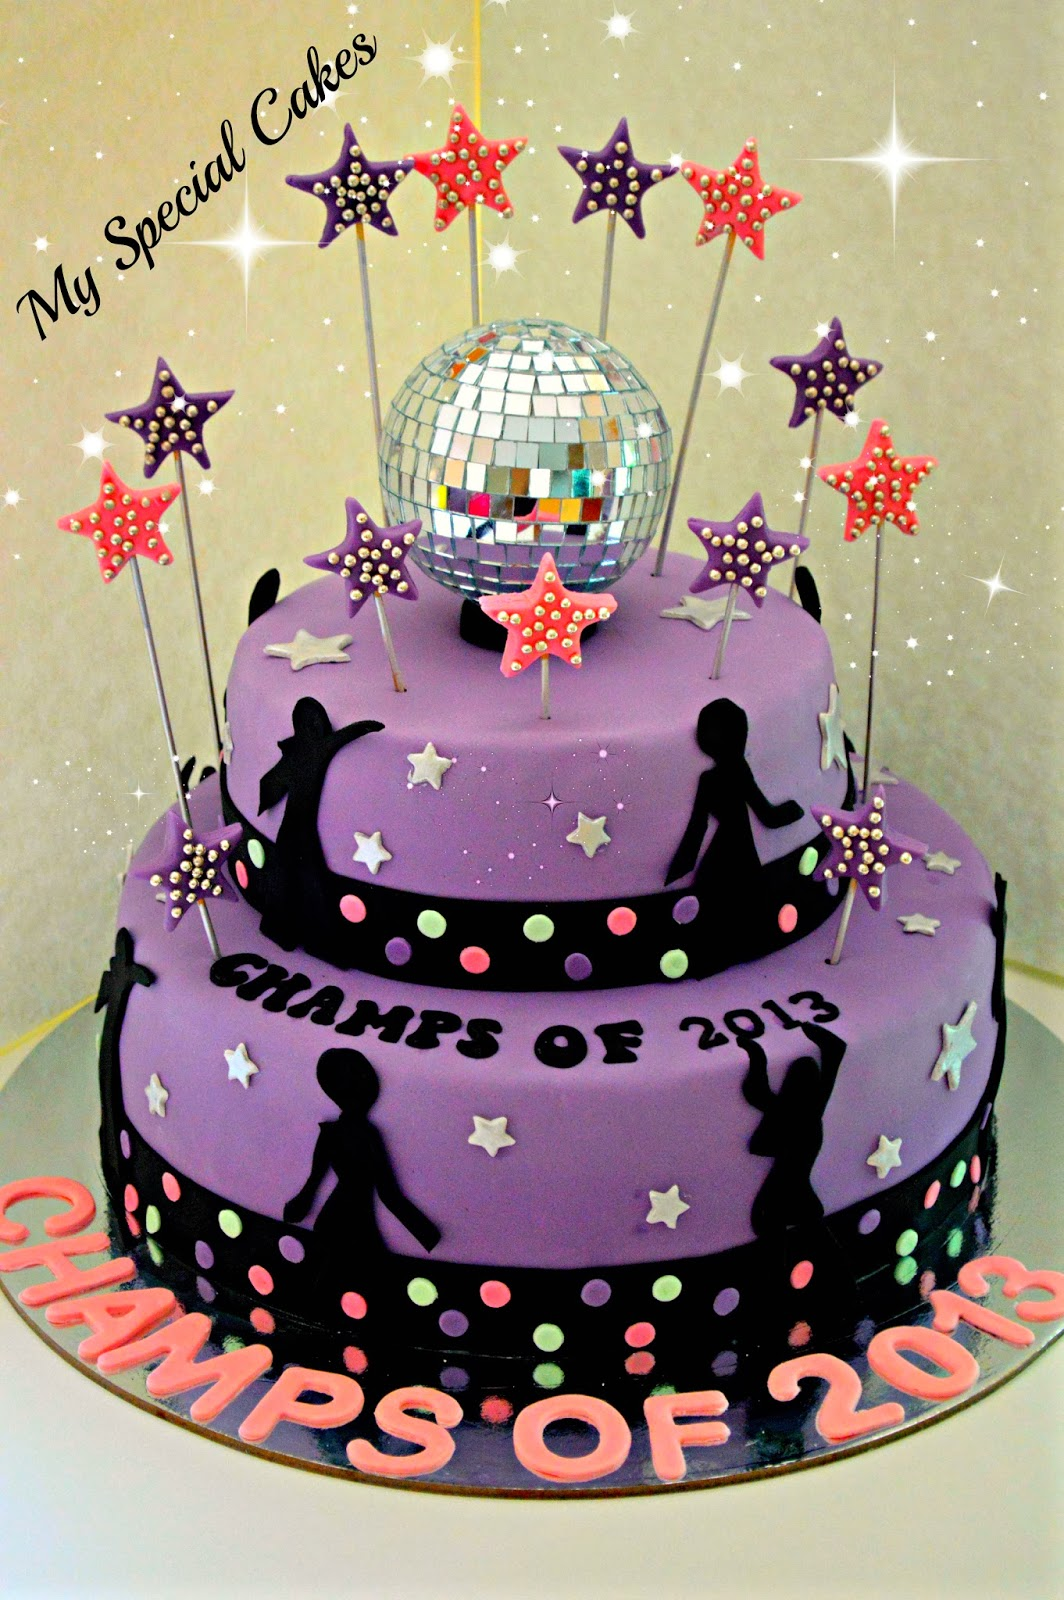 Disco Party Cake Images : My Special Cakes: Disco Themed Cake